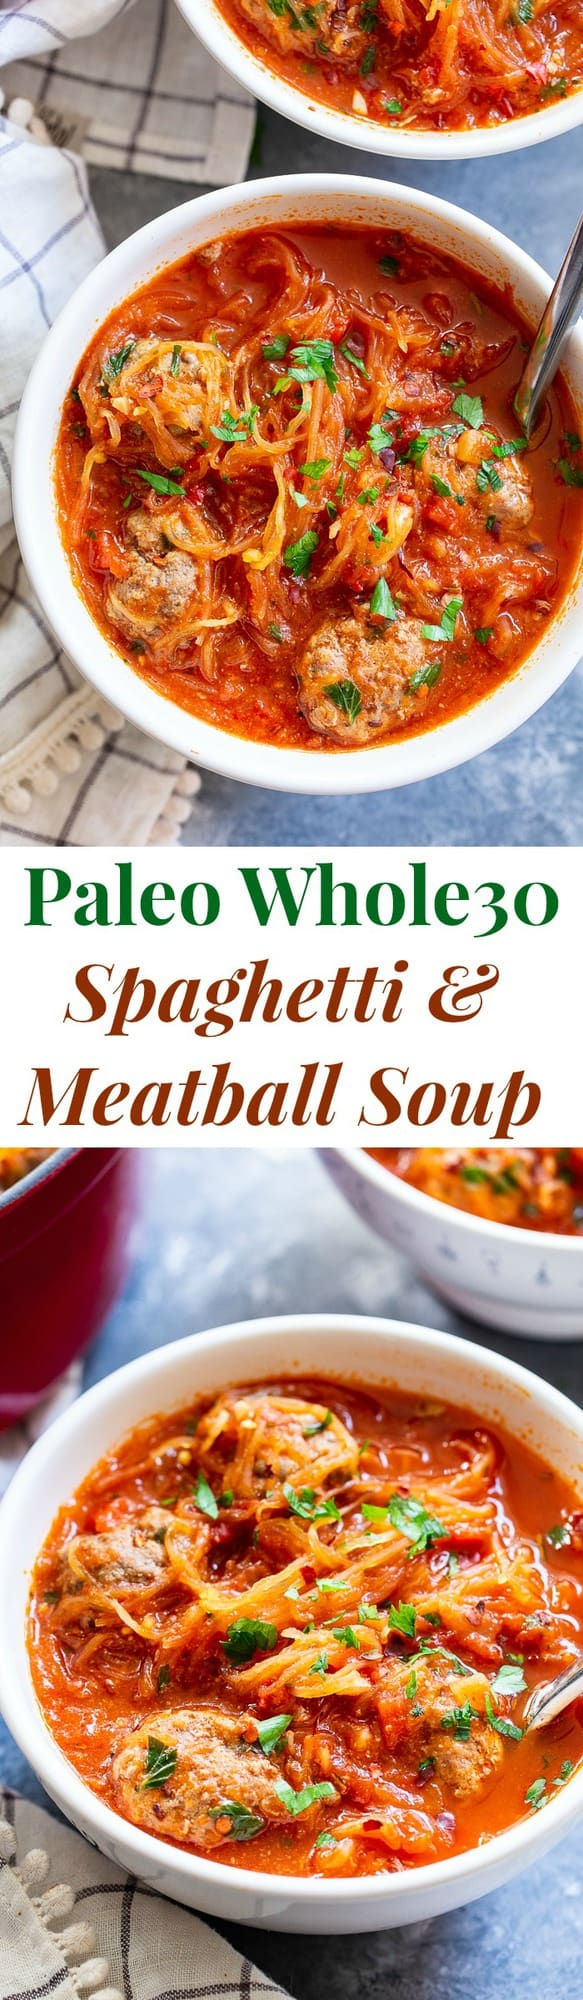 This healthy spaghetti and meatball soup uses spaghetti squash instead of pasta to make it lower in carbs, gluten-free, paleo and Whole30 compliant!  This savory, cozy soup is the perfect answer to your spaghetti and meatball cravings!